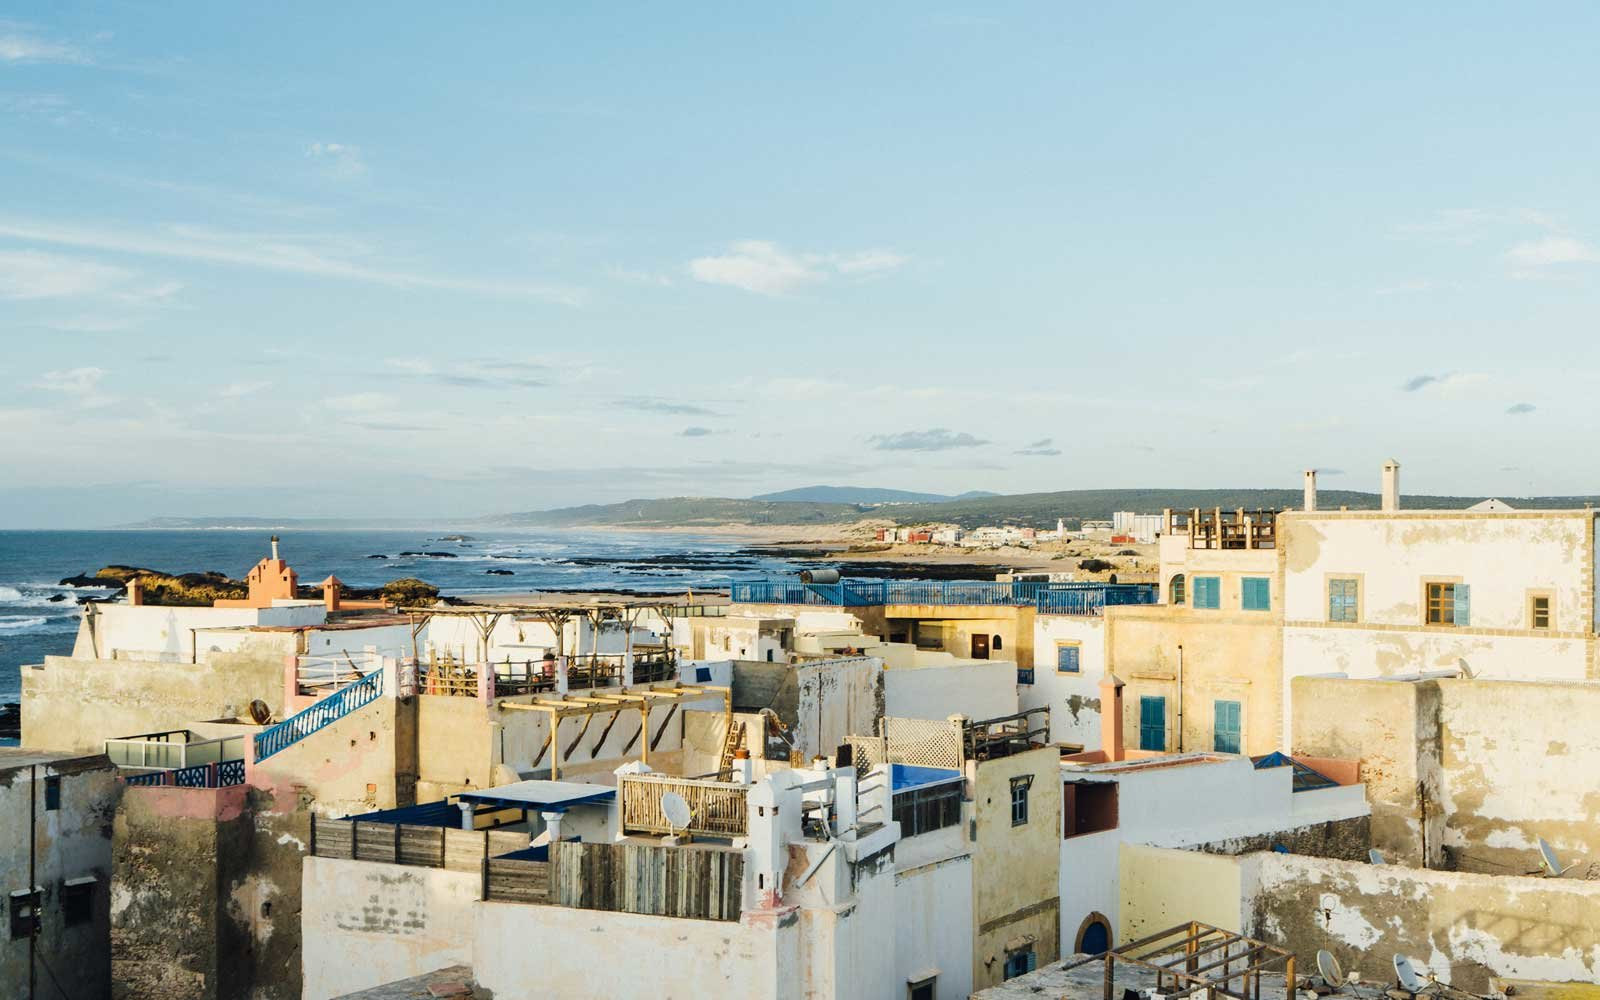 View from roof on Essaouria, Morocco